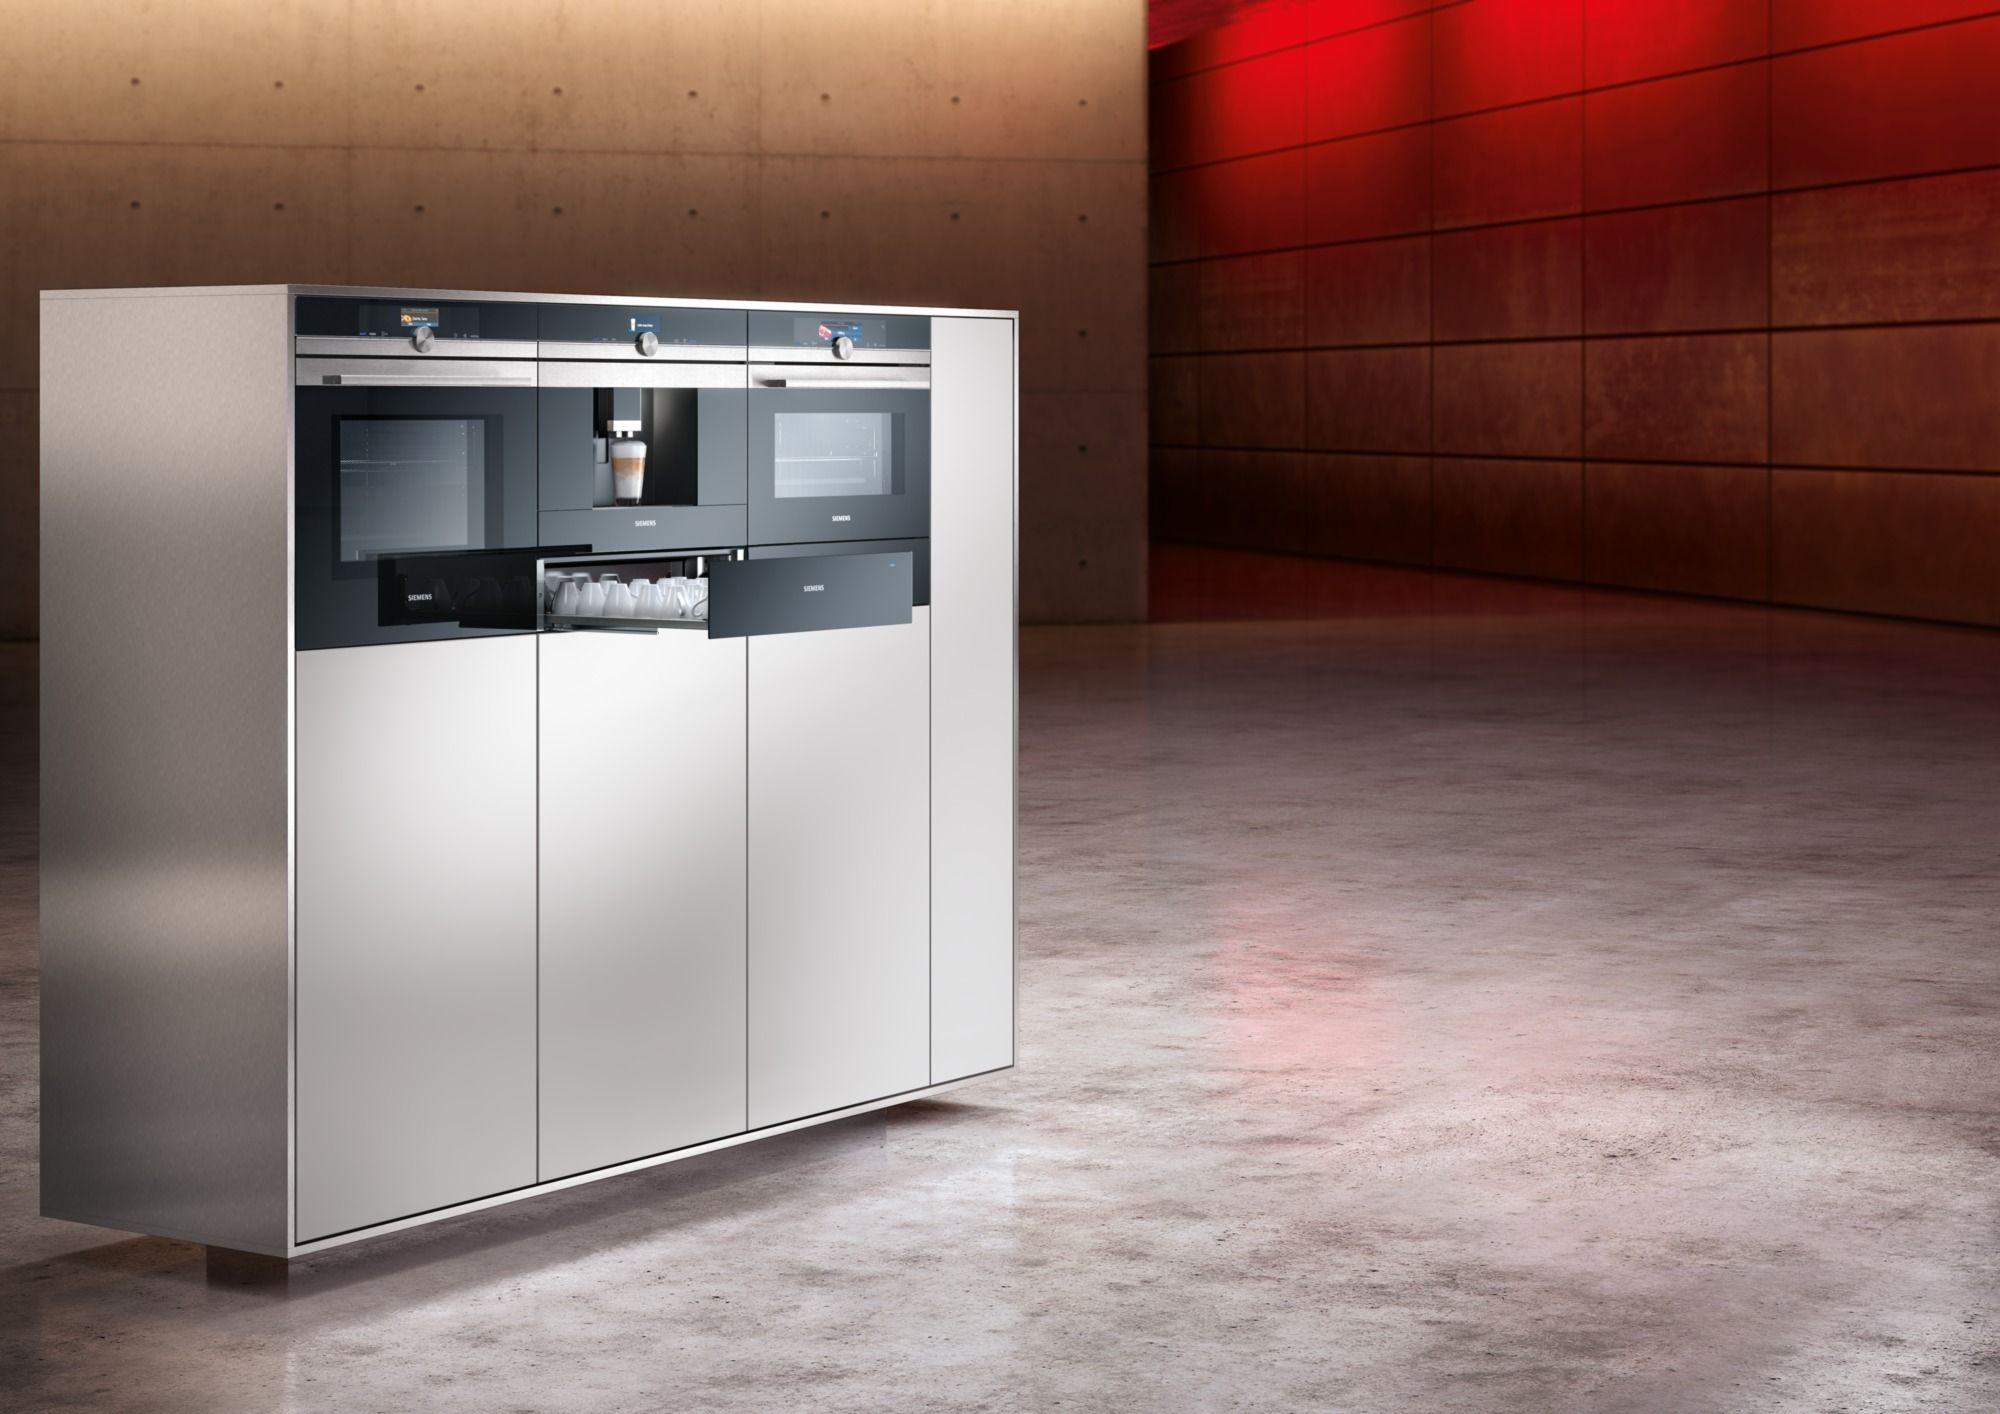 Uncategorized Siemens Kitchen Appliances Prices new range of siemens appliances ovens with a coffee machine in find bosch neff kitchen at kitchencraft witham essex the lowest price guaranteed view our showroom or cal